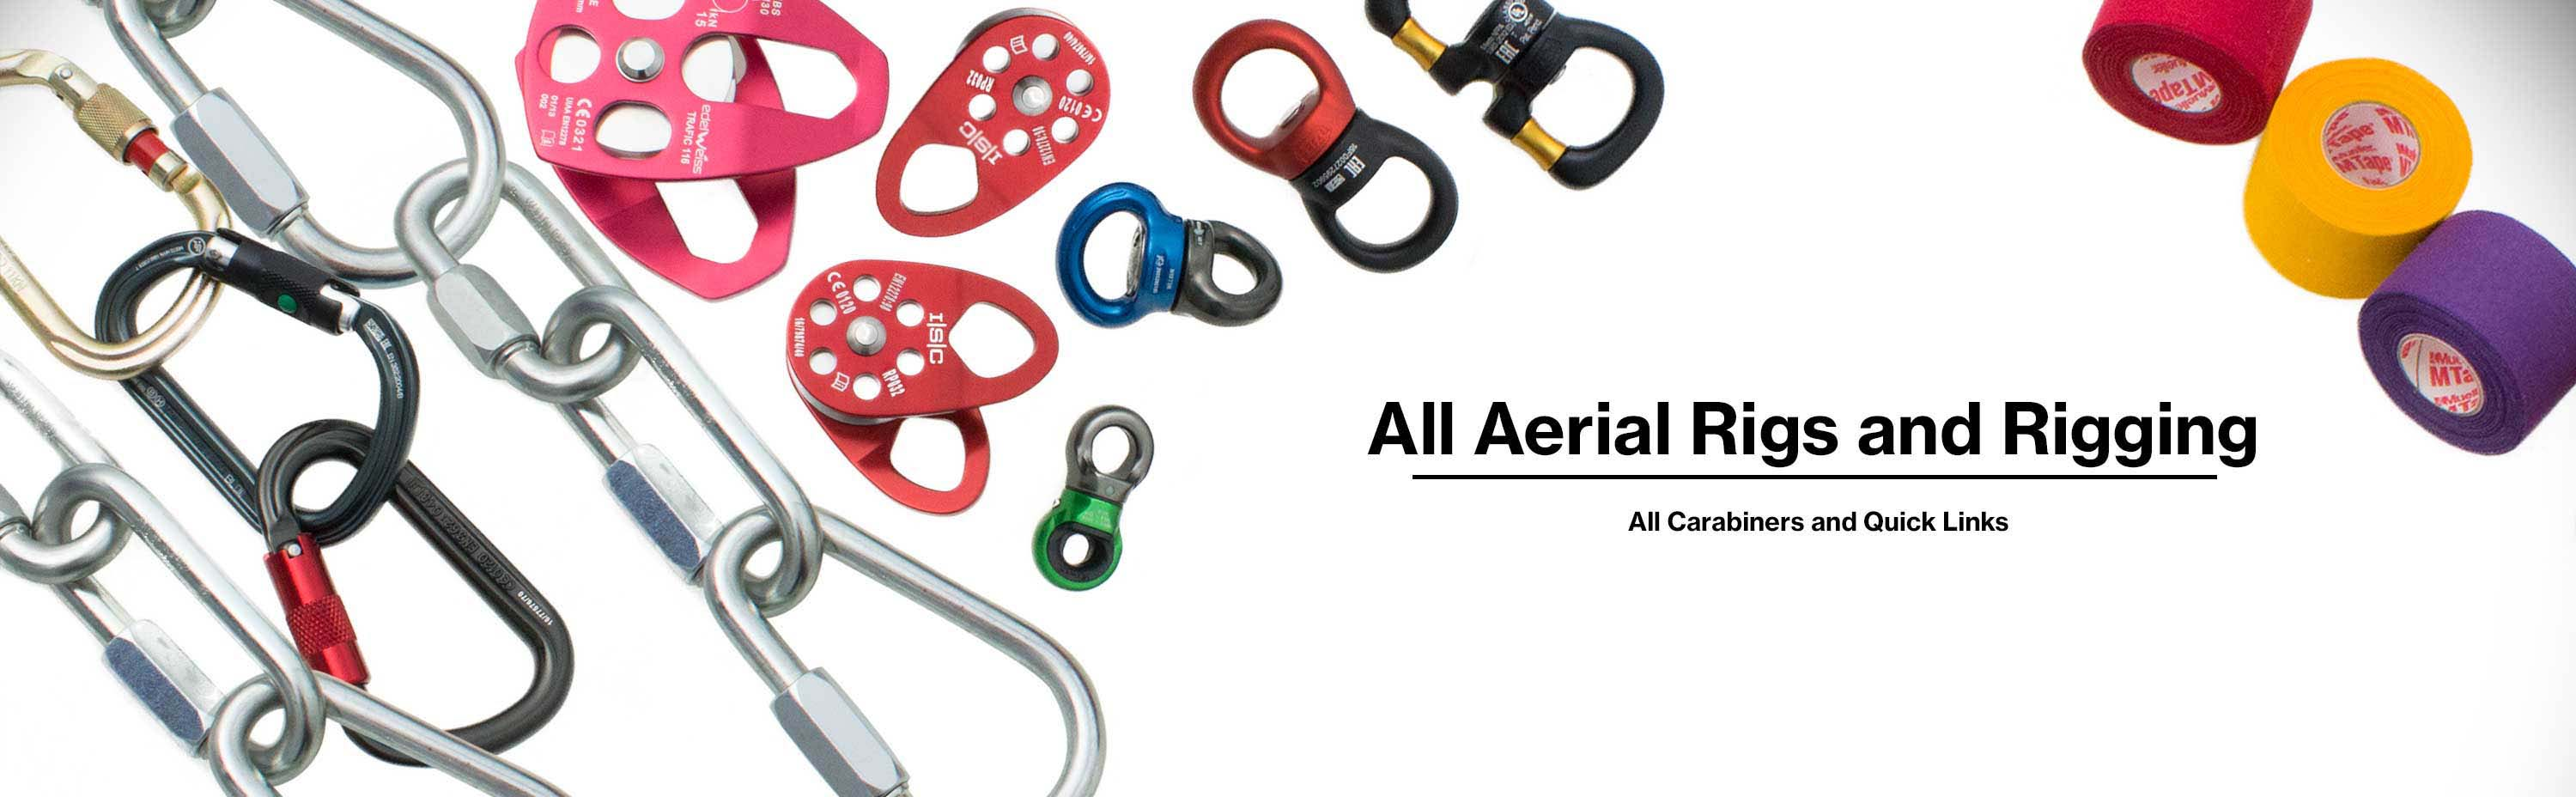 Aerial Rigs and Rigging